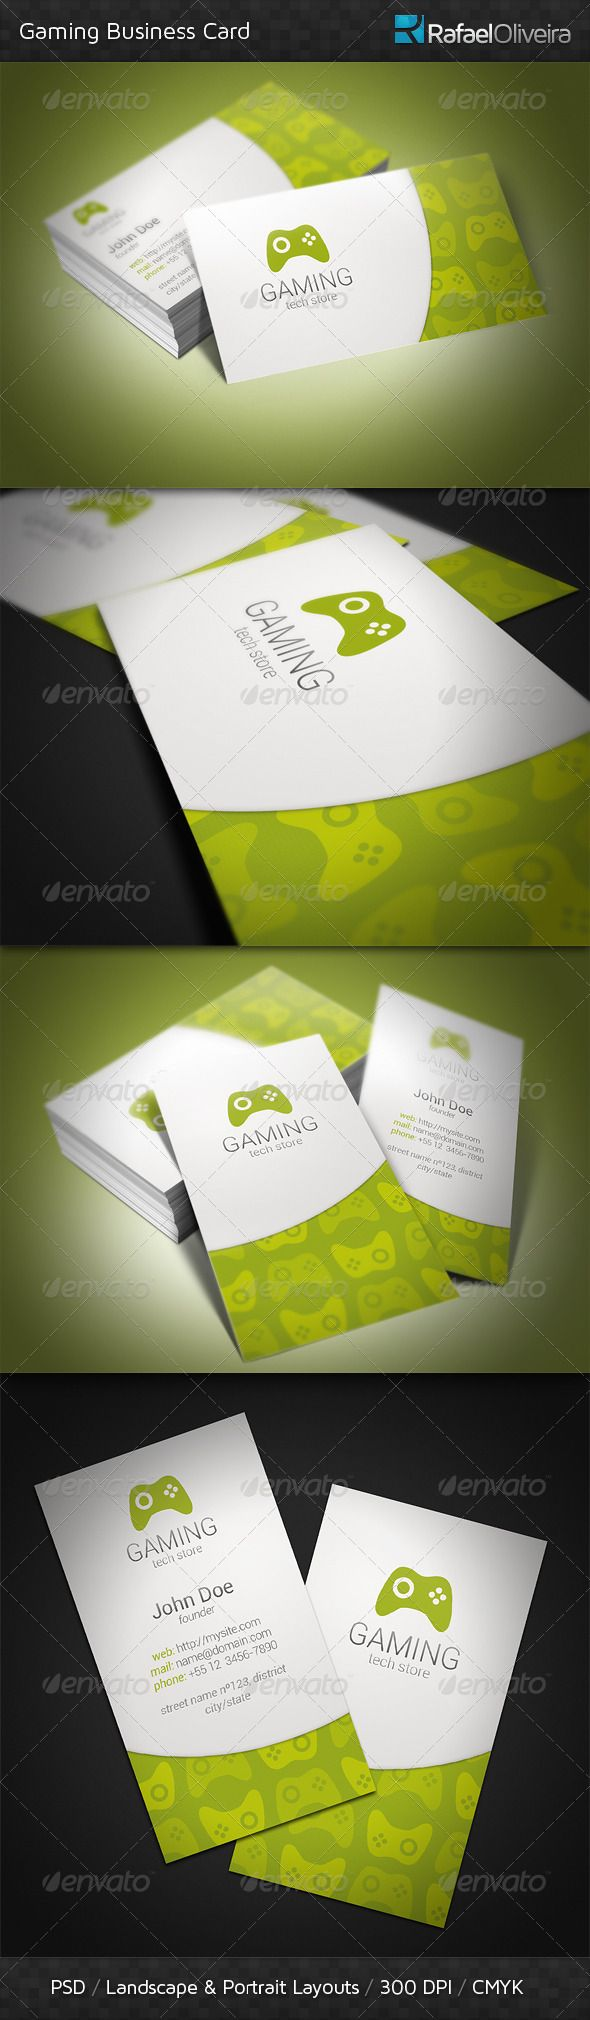 8 best Business Cards images on Pinterest | Business cards, Carte ...